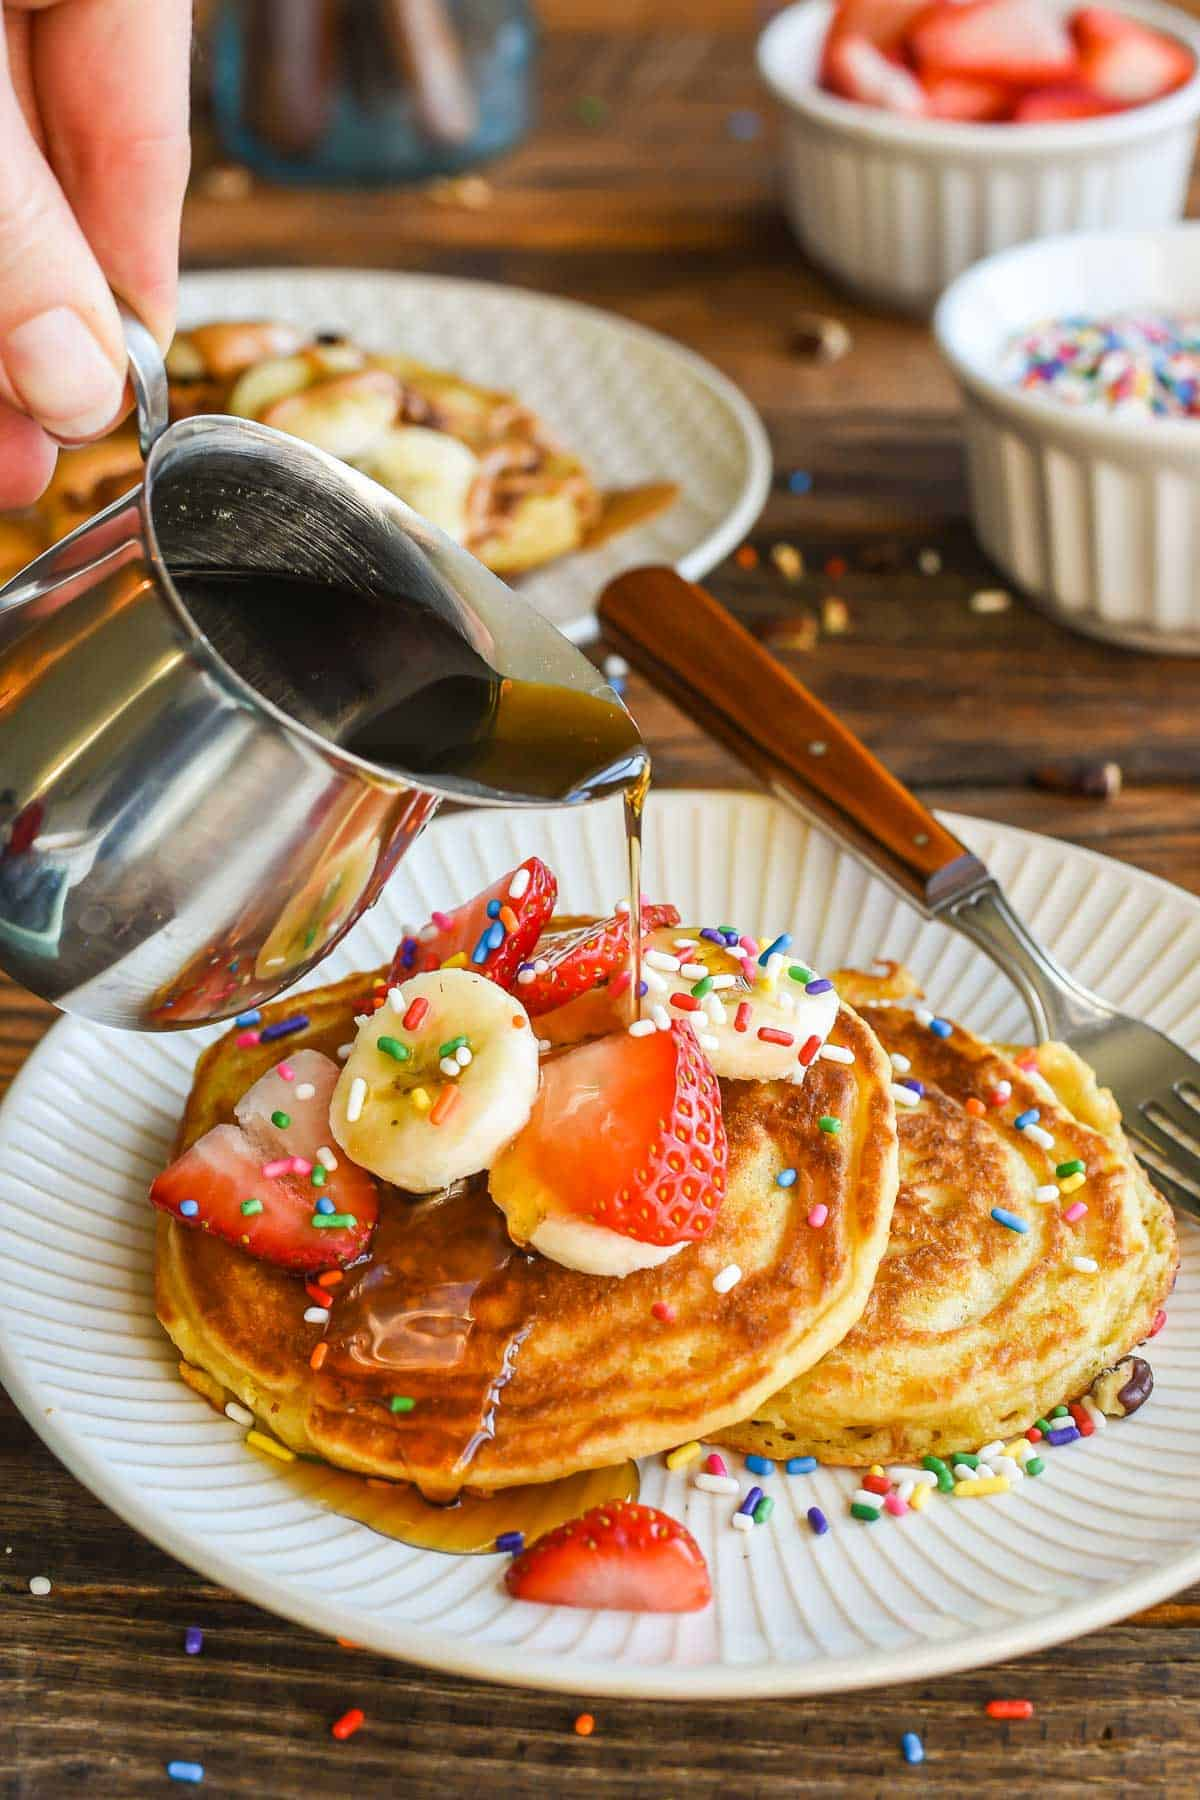 How to Host an Epic Pancake Bar Party